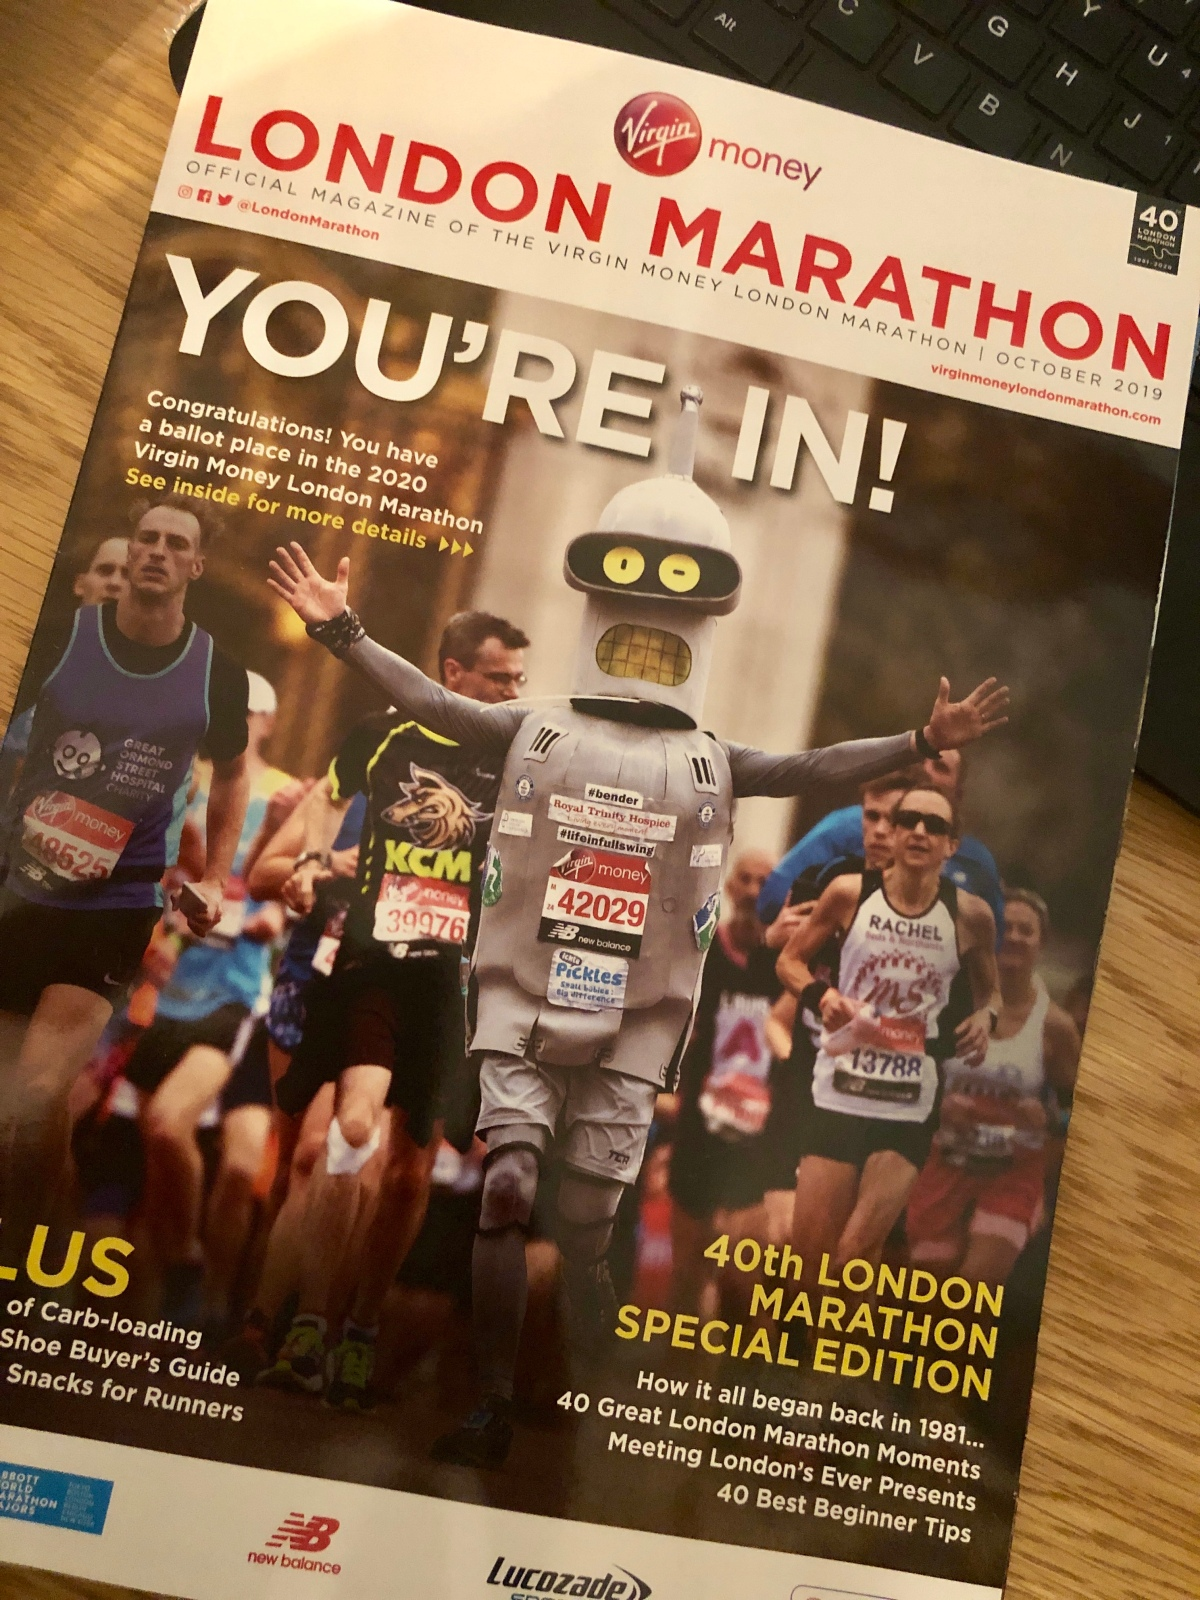 It's me – I'm back and I have (London Marathon) news!